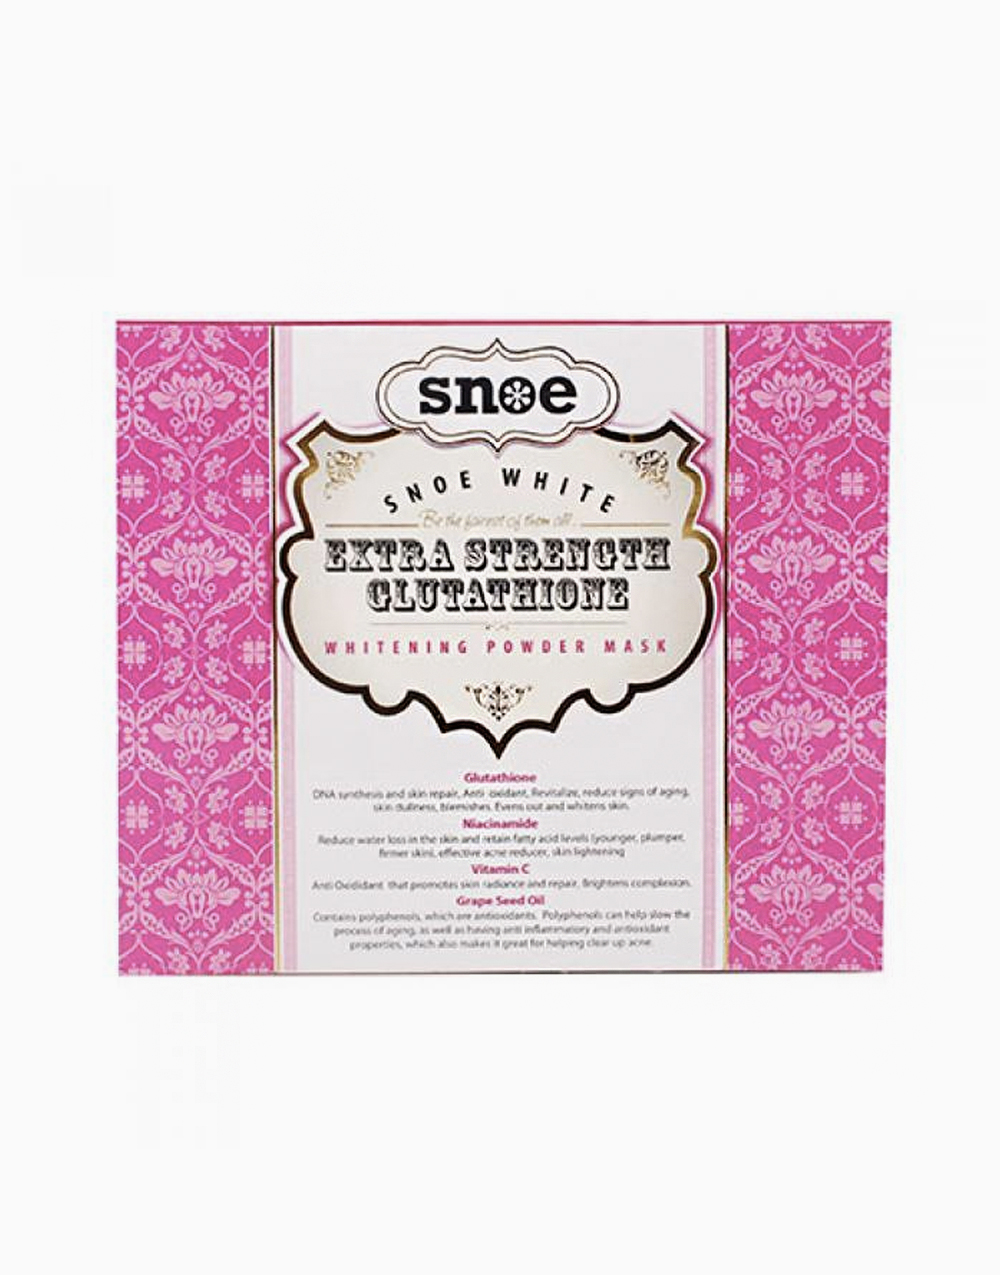 Extra Strength Glutathione Whitening Powder Mask by Snoe Beauty